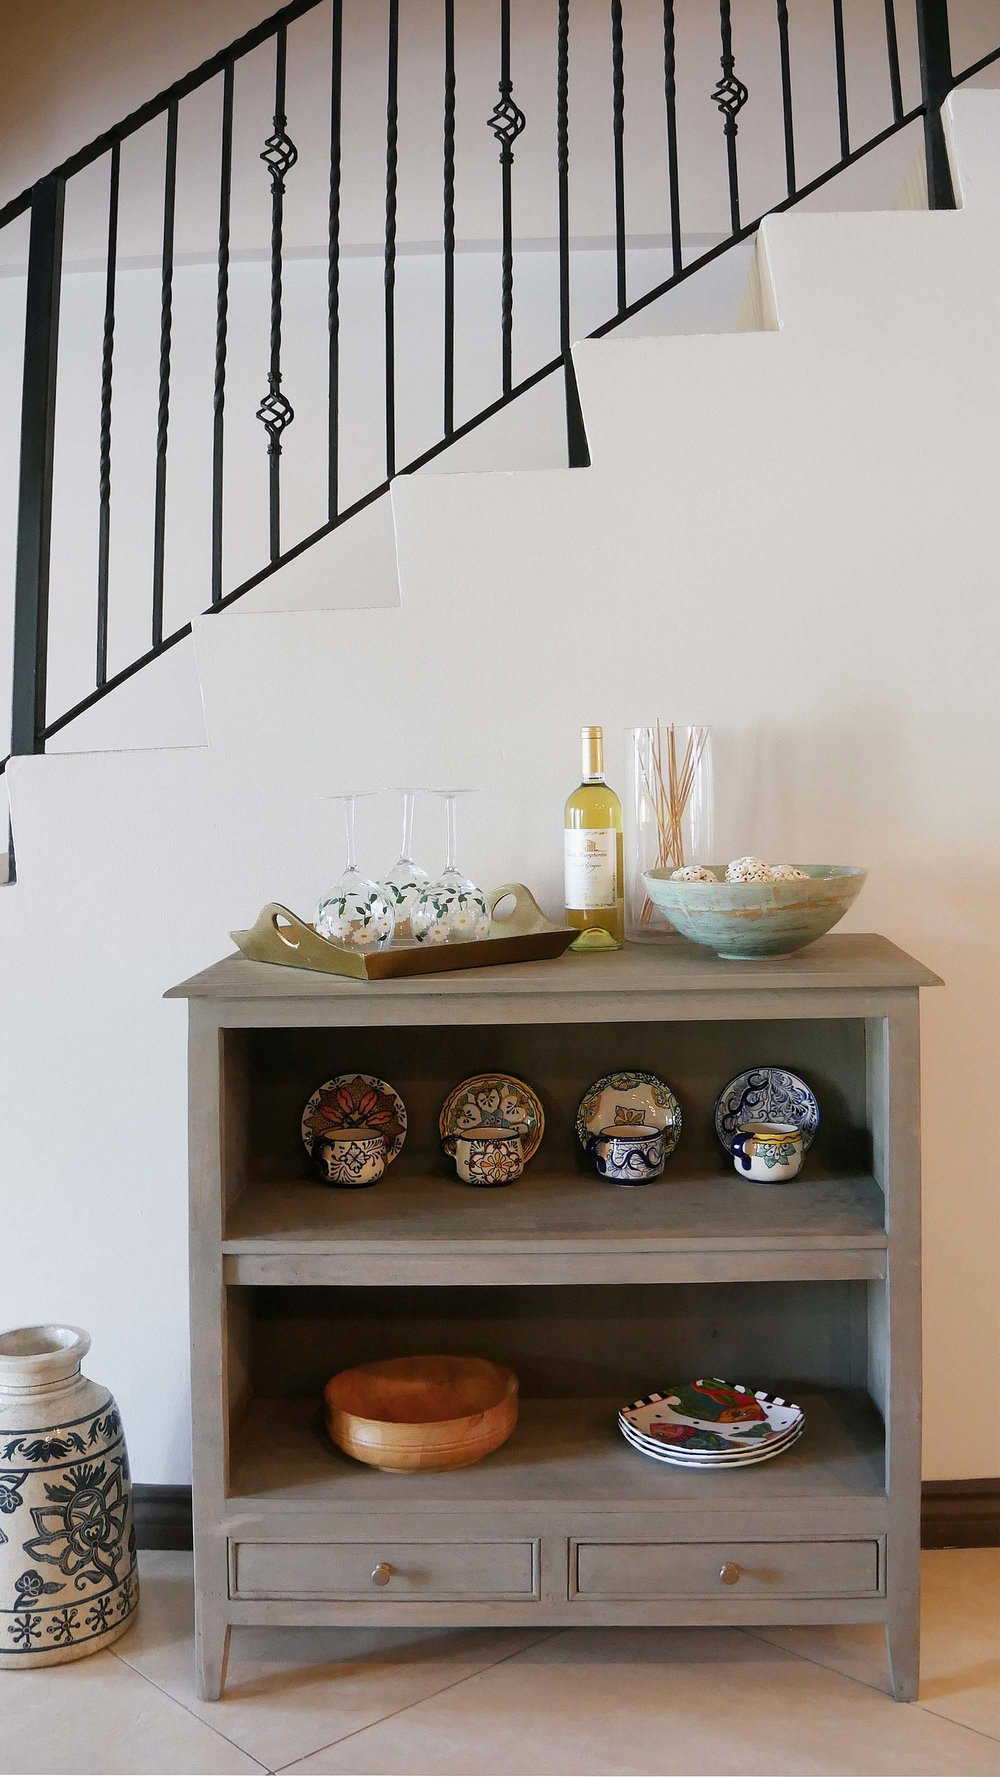 The styled sideboard